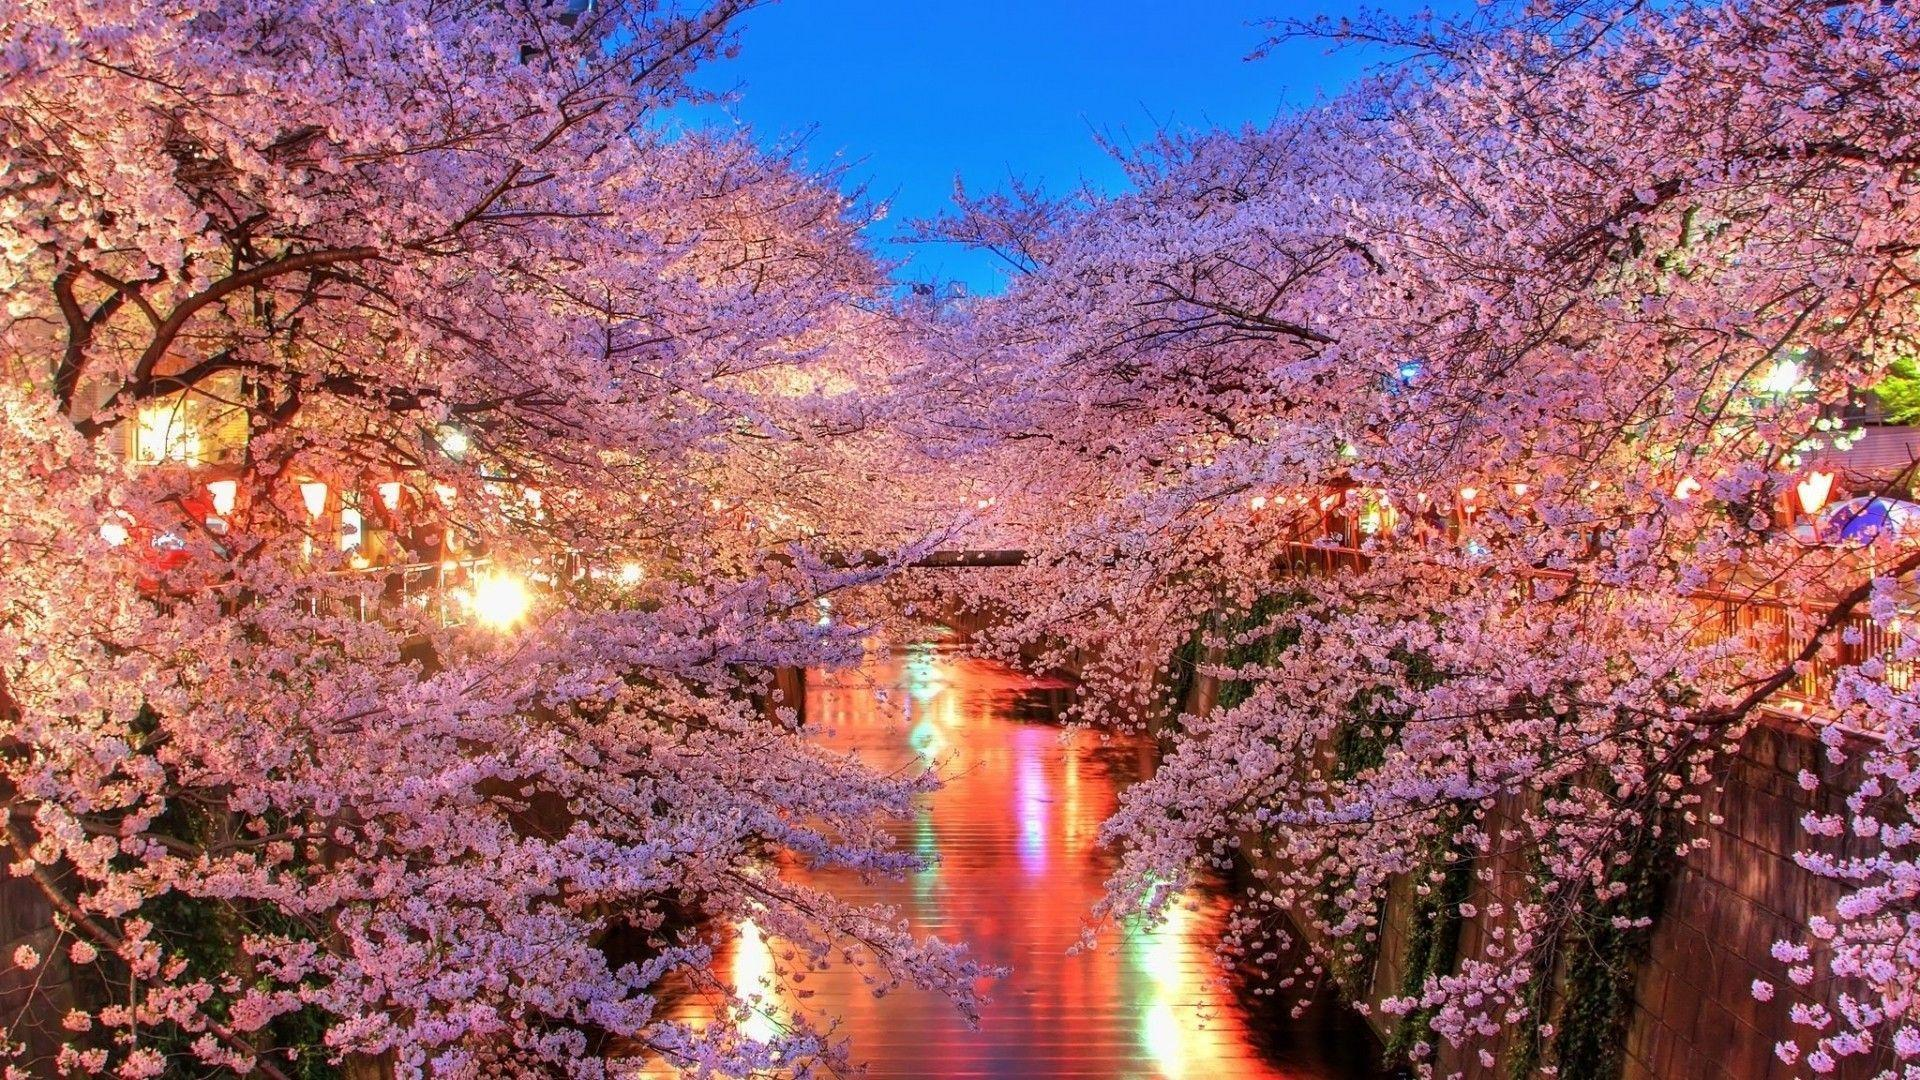 Must see Wallpaper High Resolution Cherry Blossom - eiQWlWP  Trends_28143.jpg